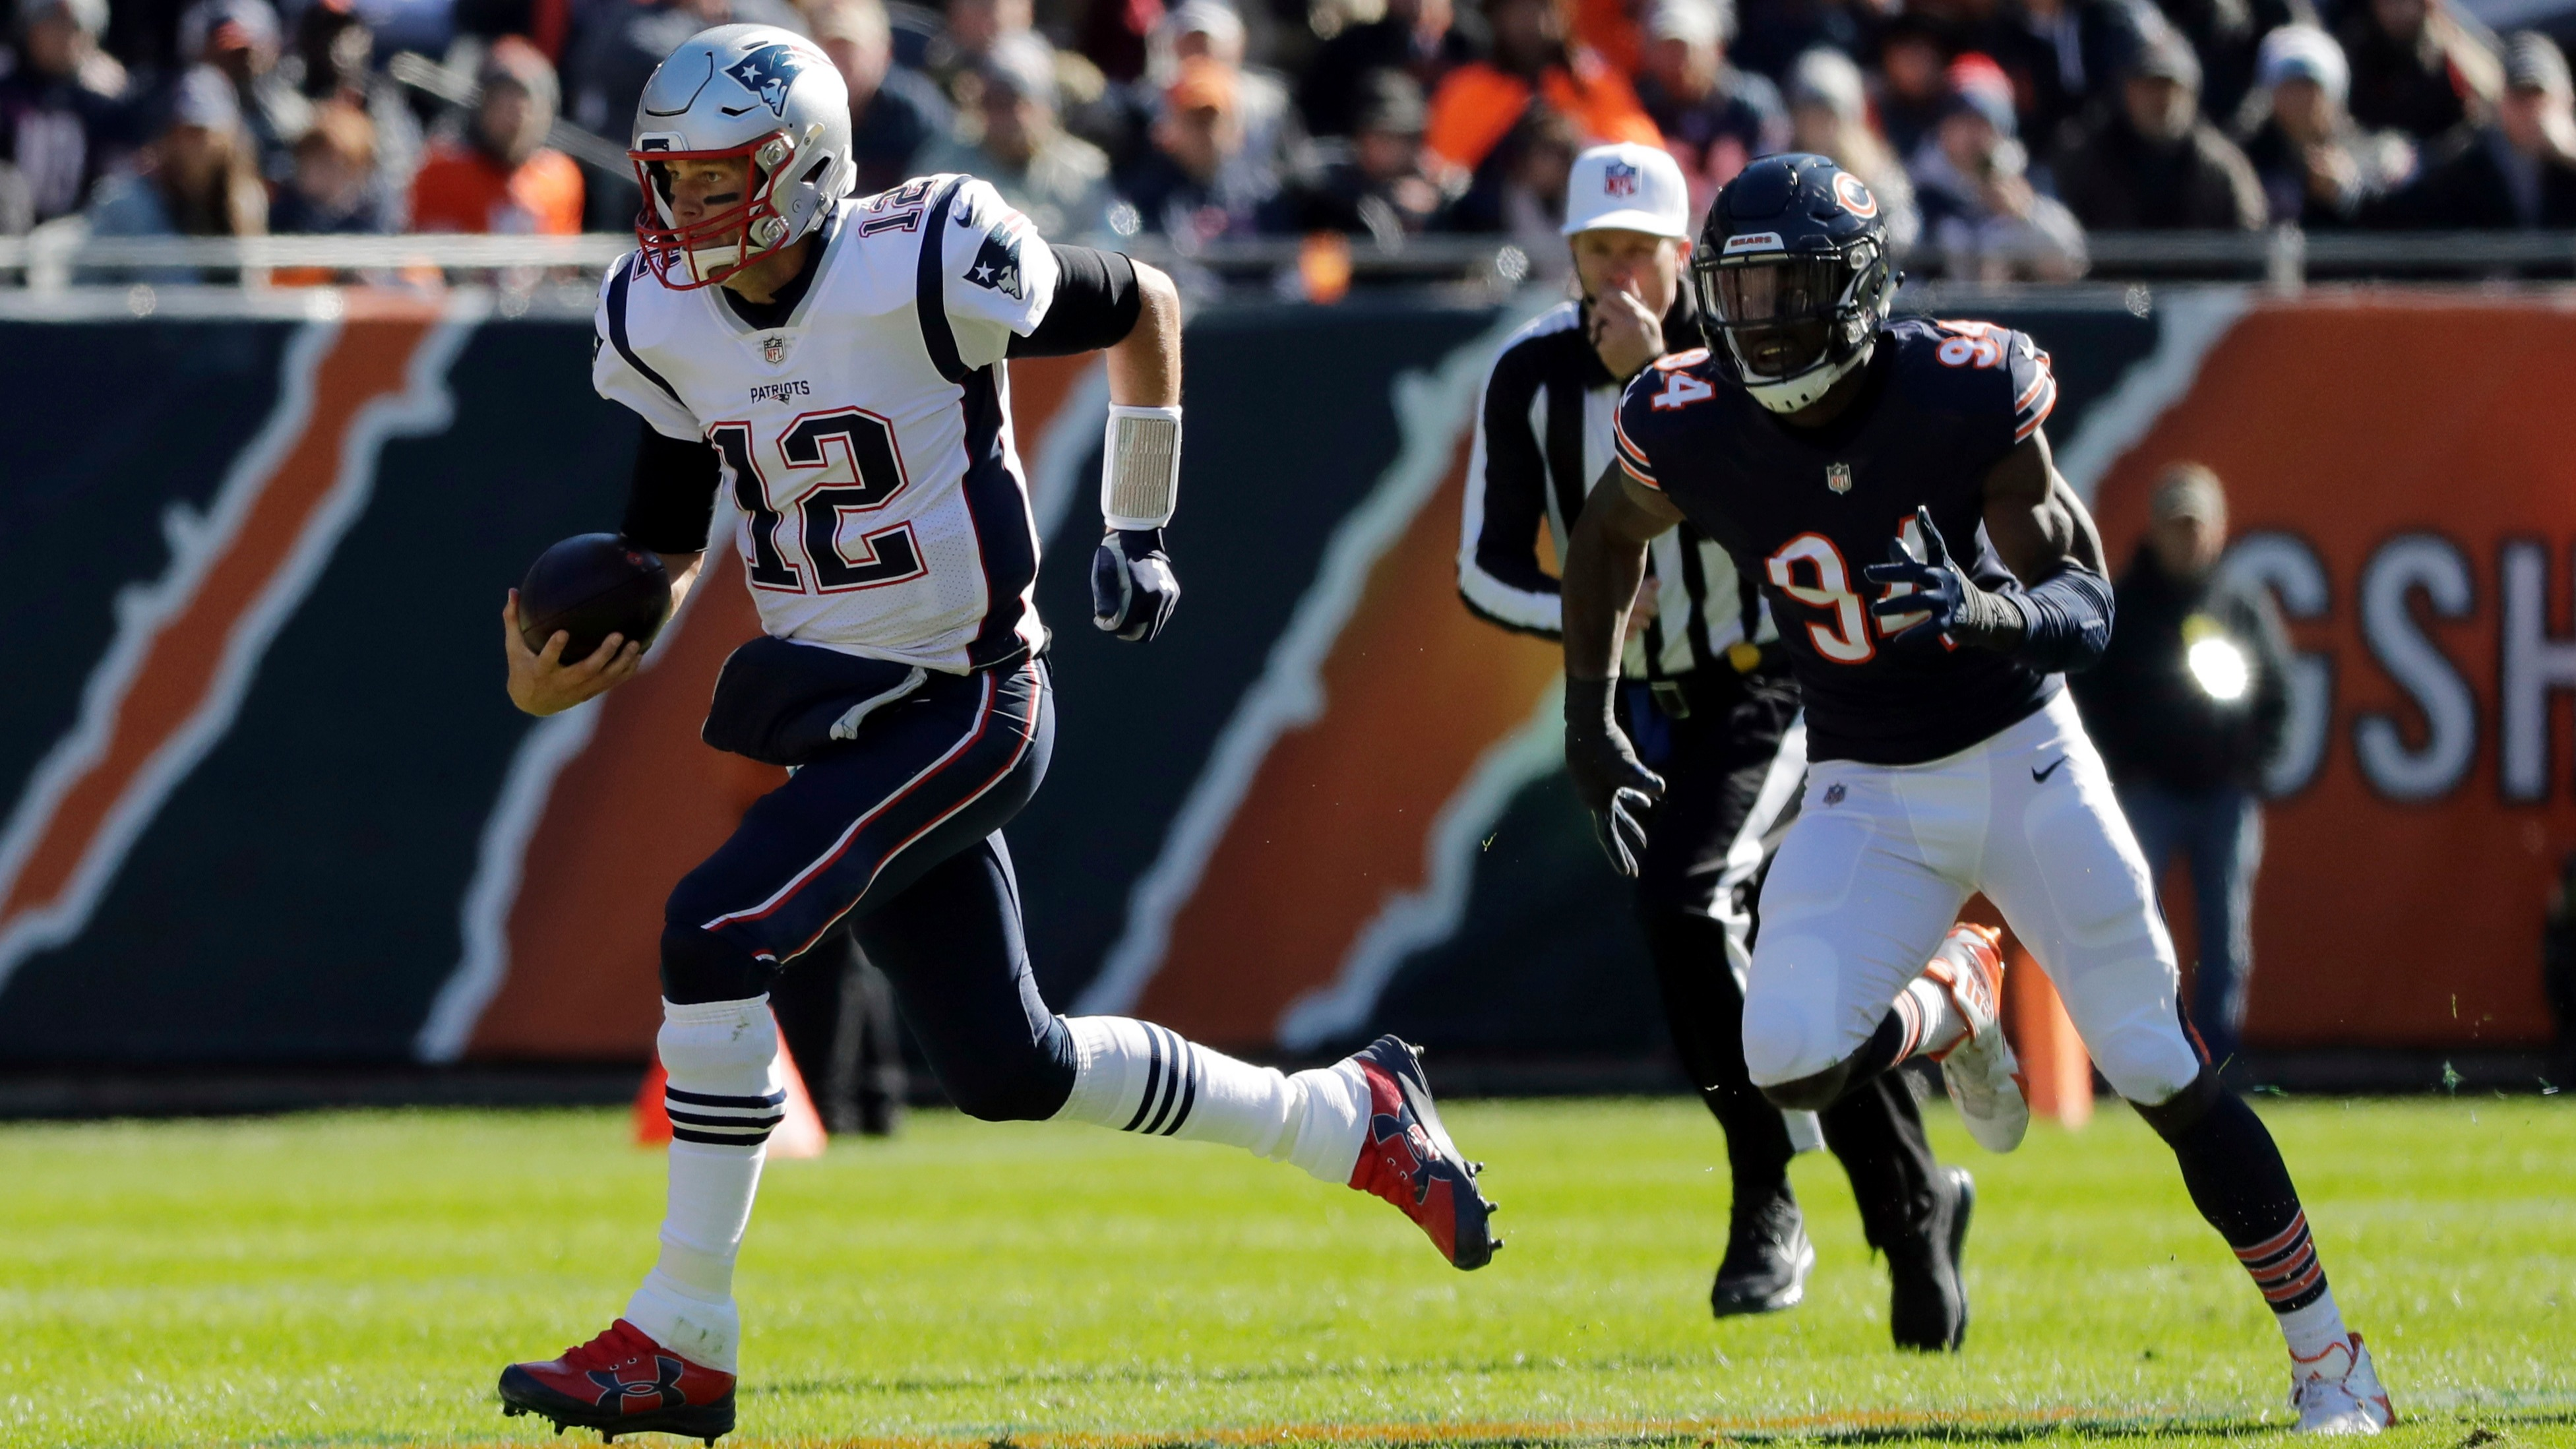 NFL win totals for 2019 season: Comparing four sportsbooks